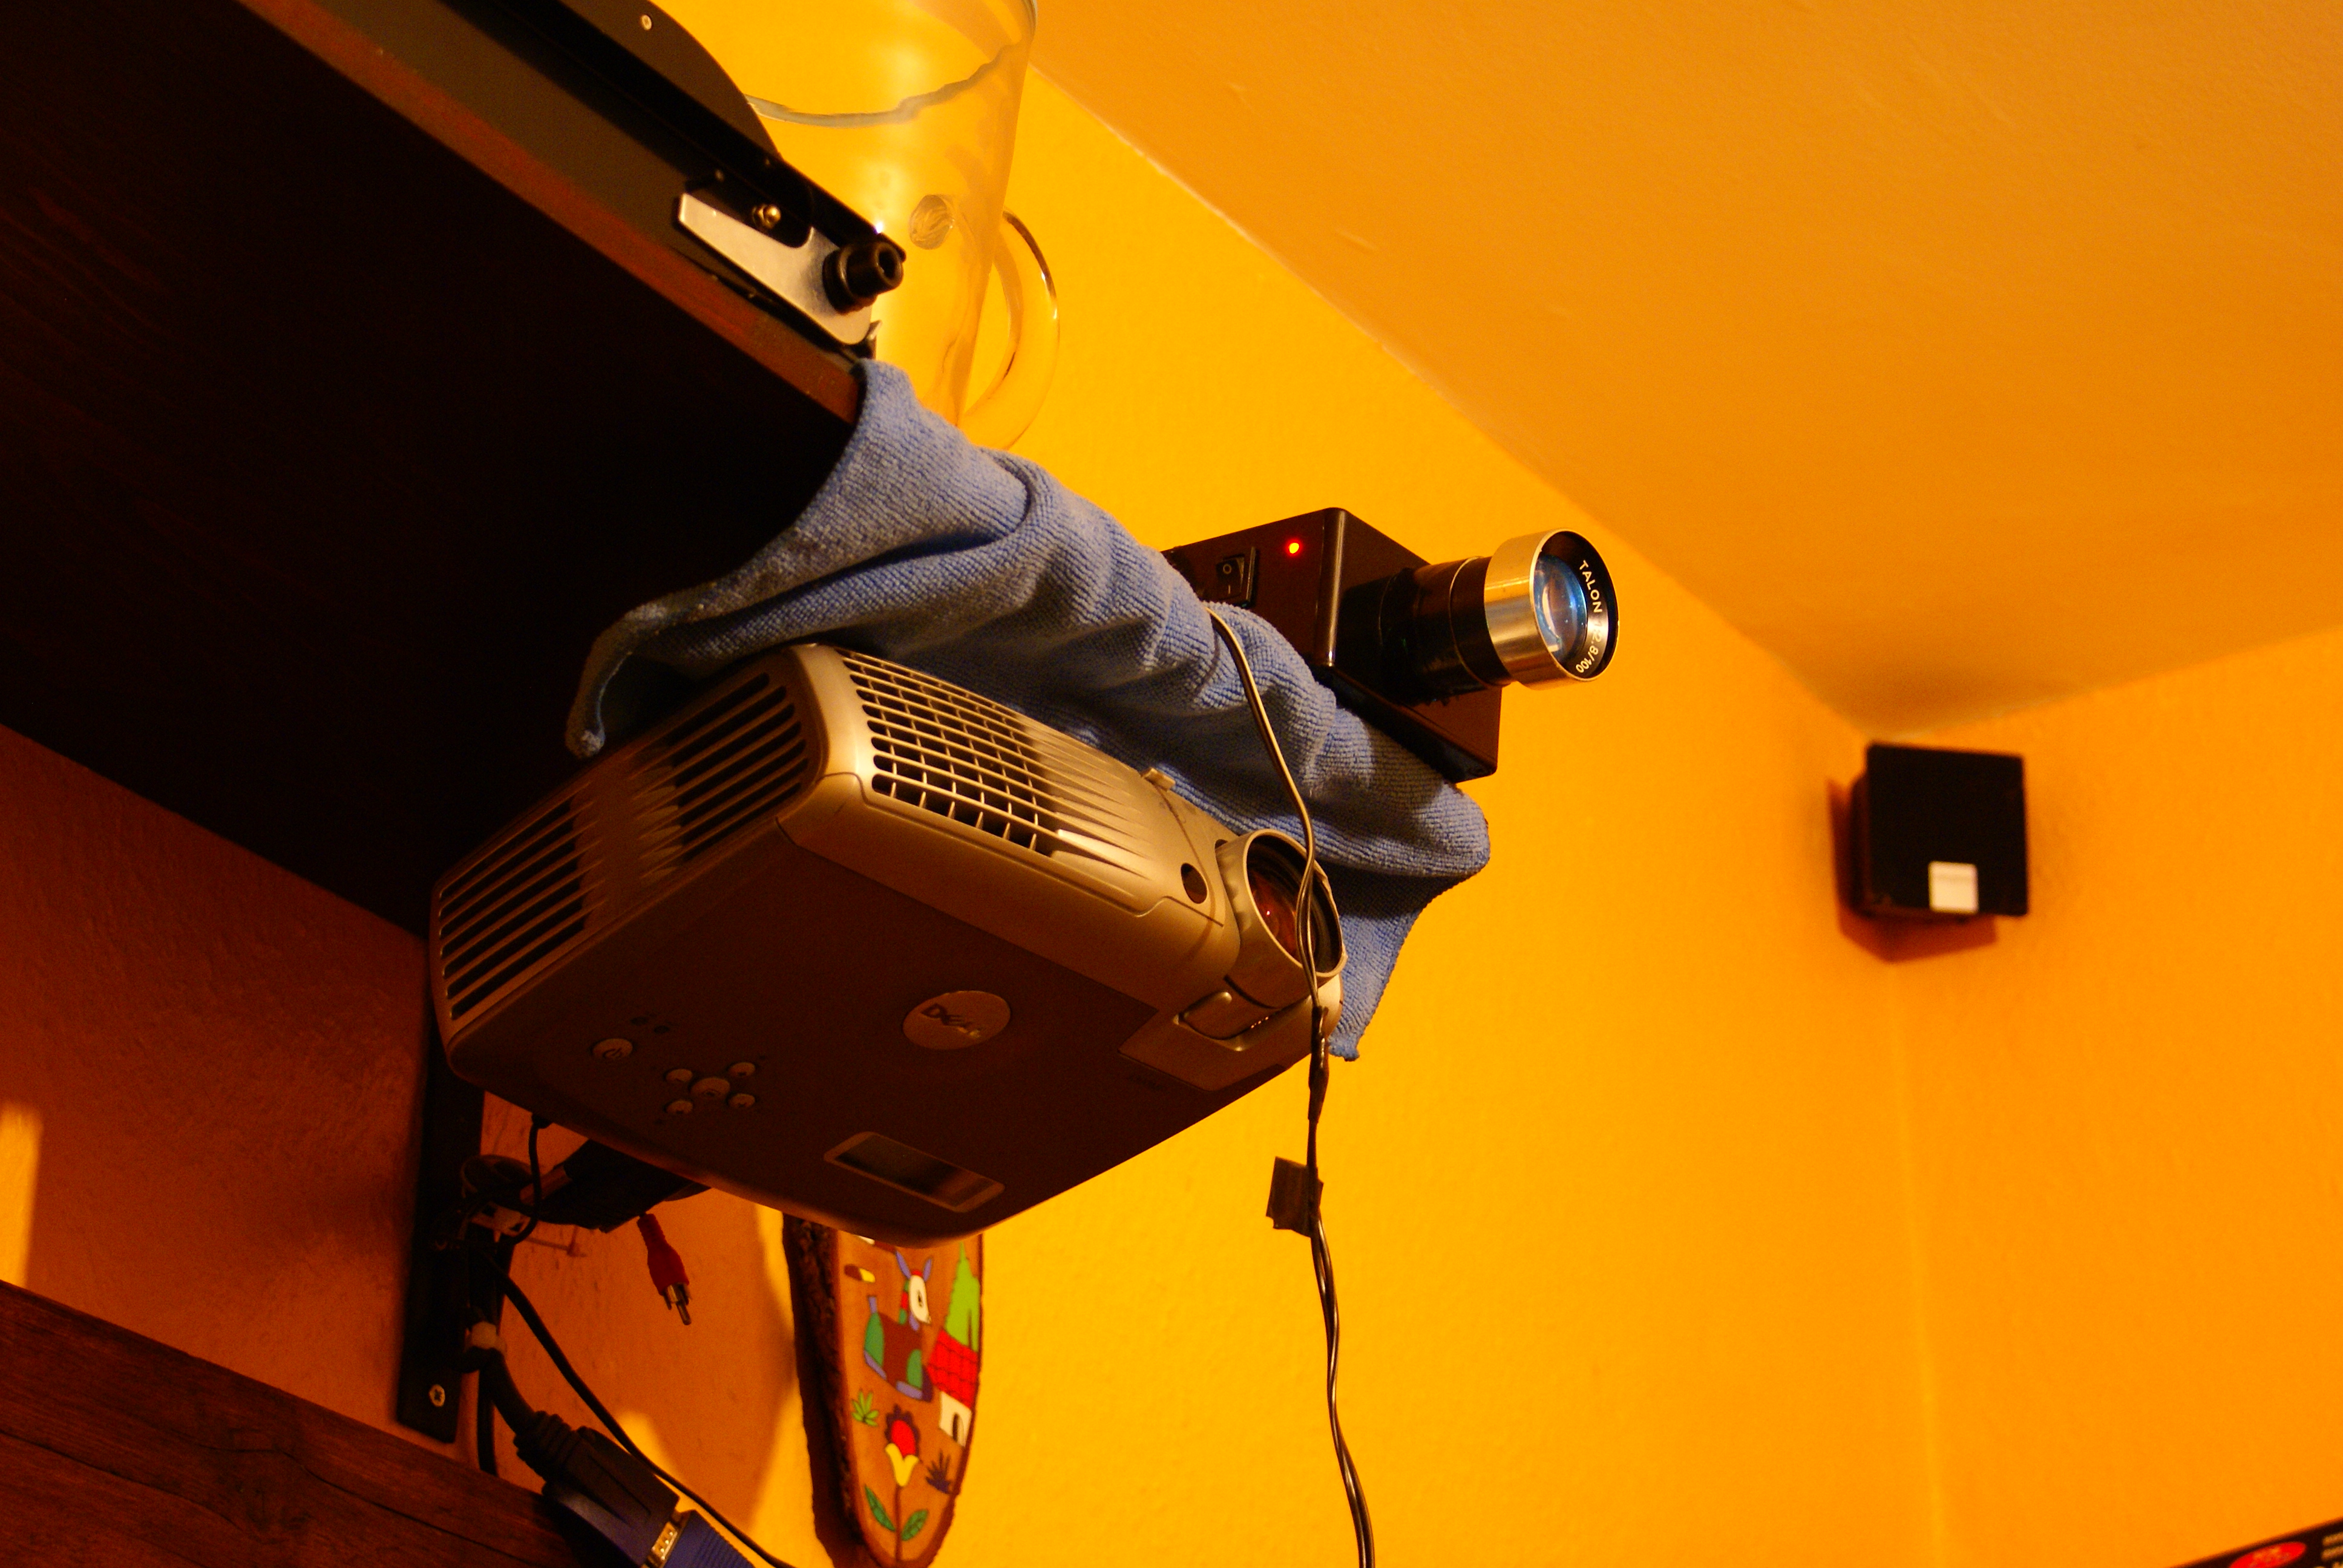 Picture of How to Make a Small DIY LED Projector